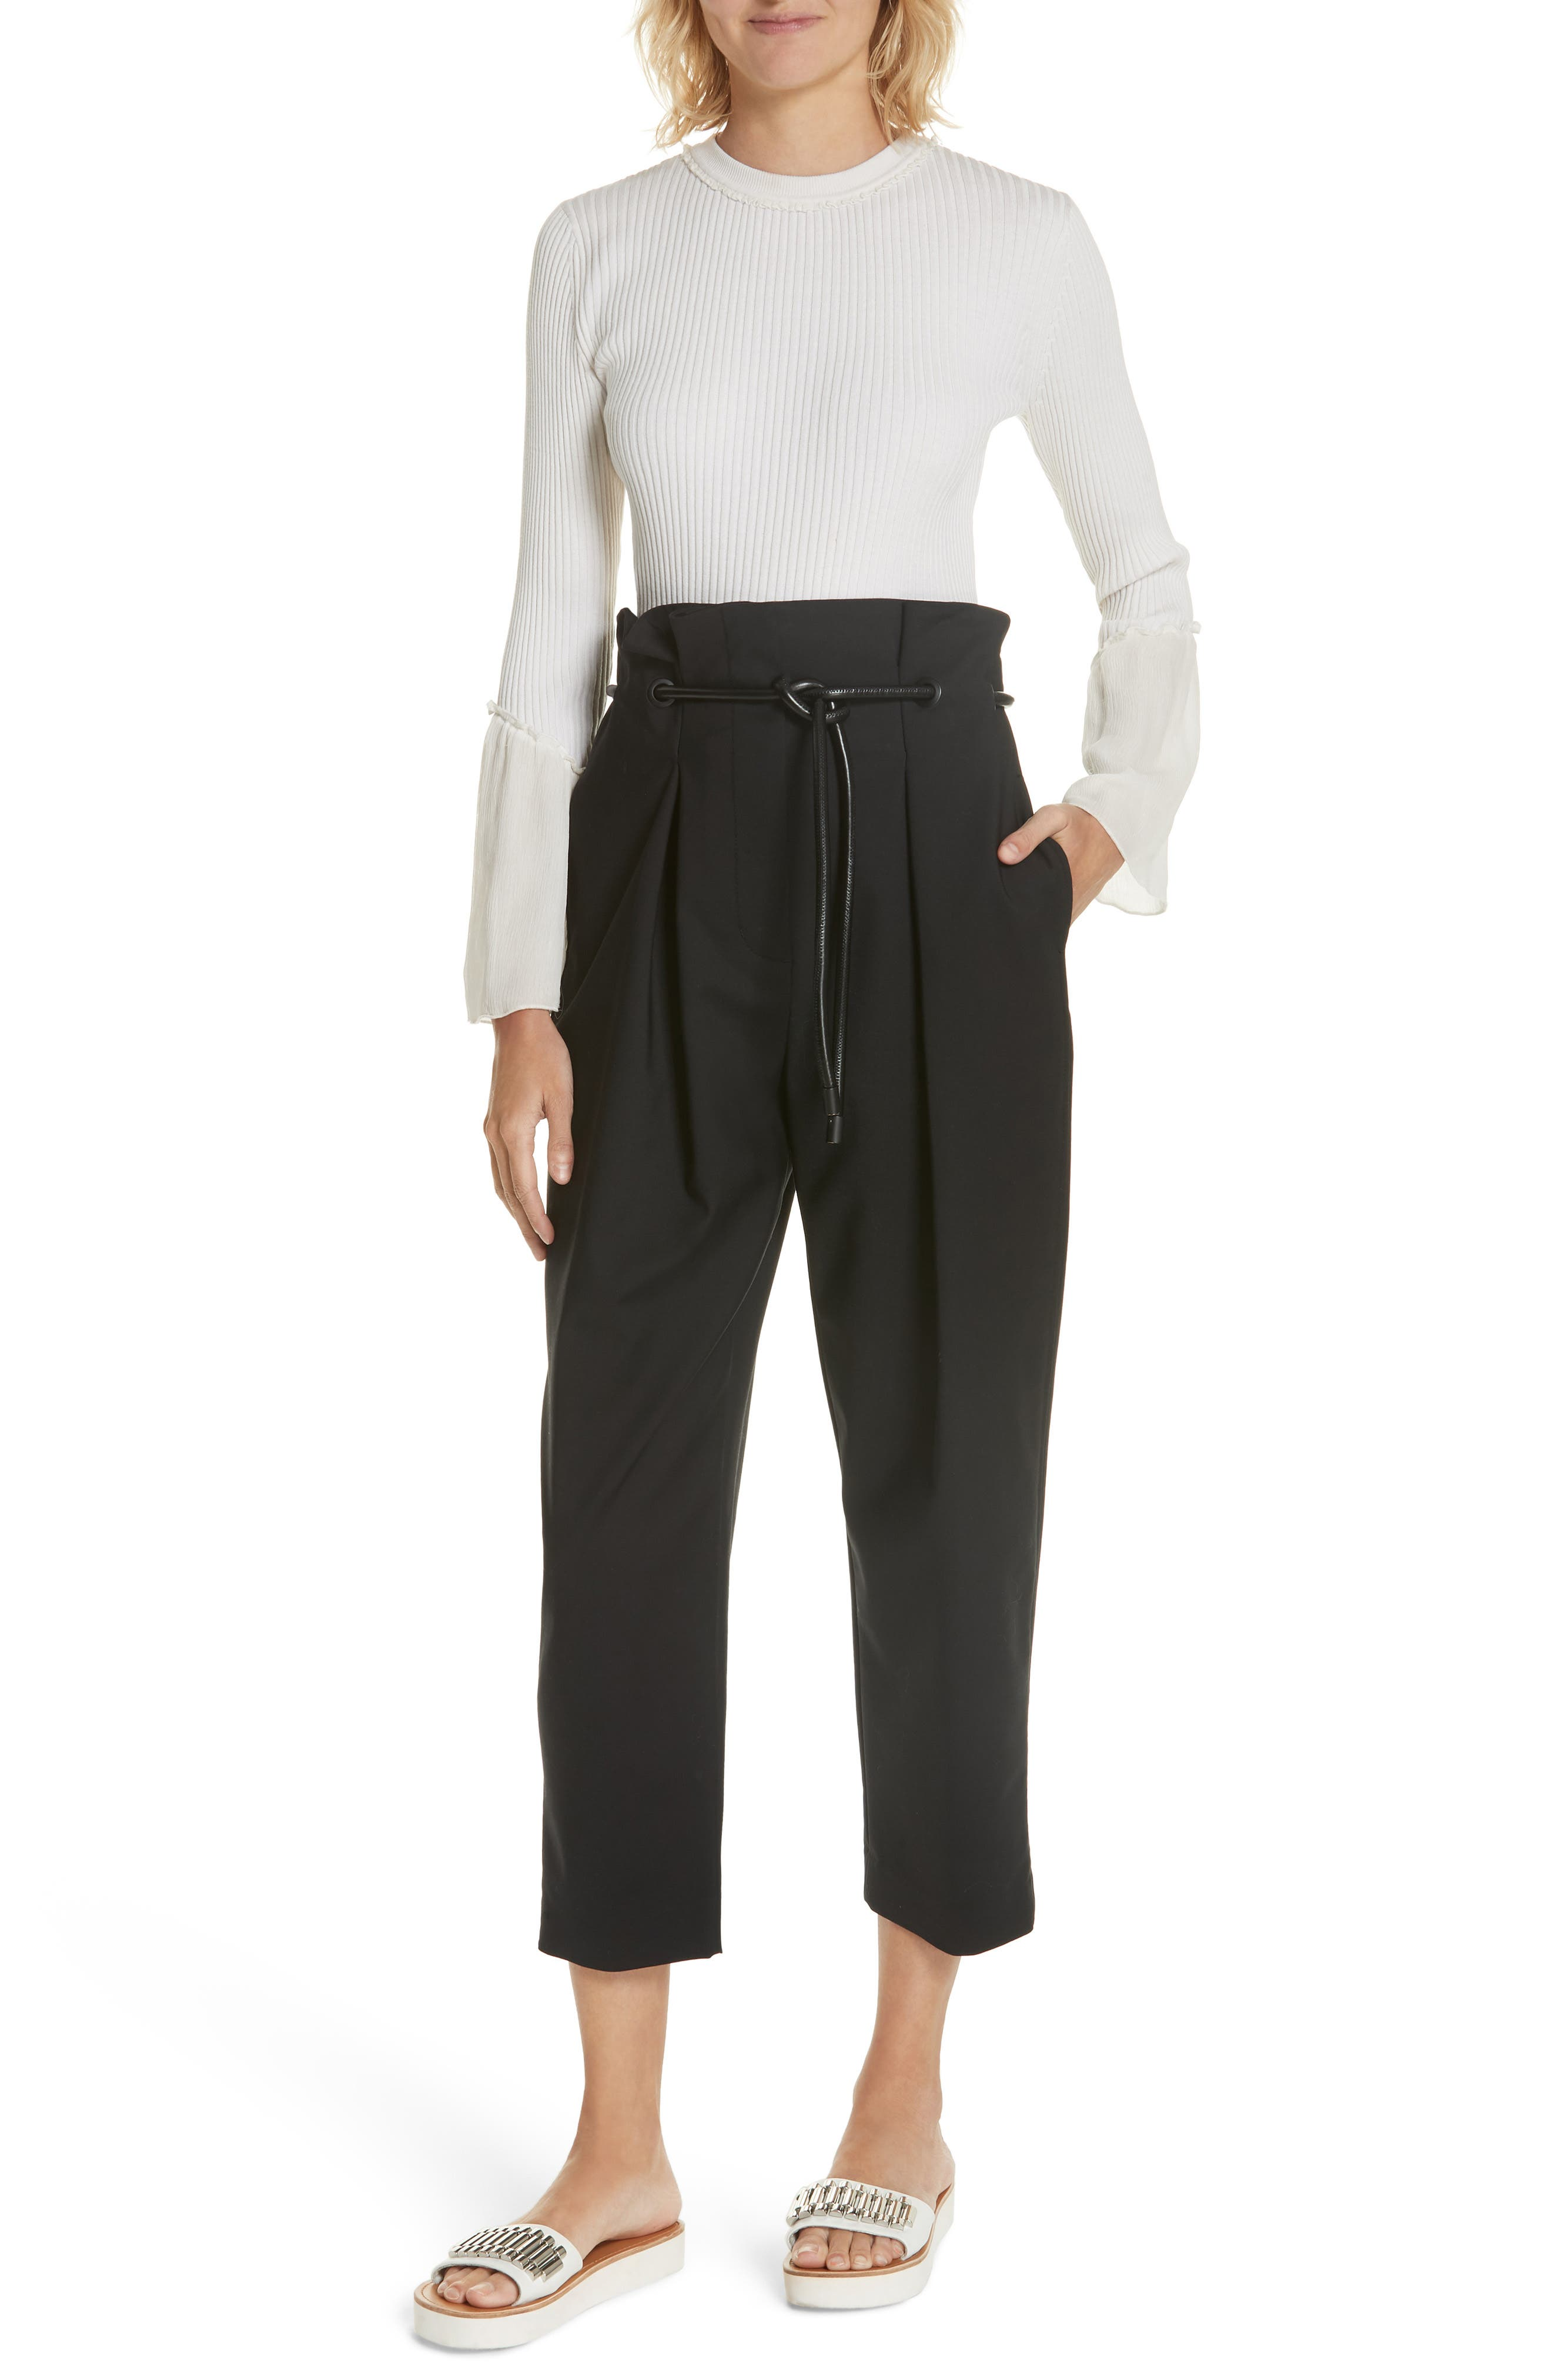 3.1 PHILLIP LIM,                             Origami Crop Flare Pants,                             Alternate thumbnail 7, color,                             001